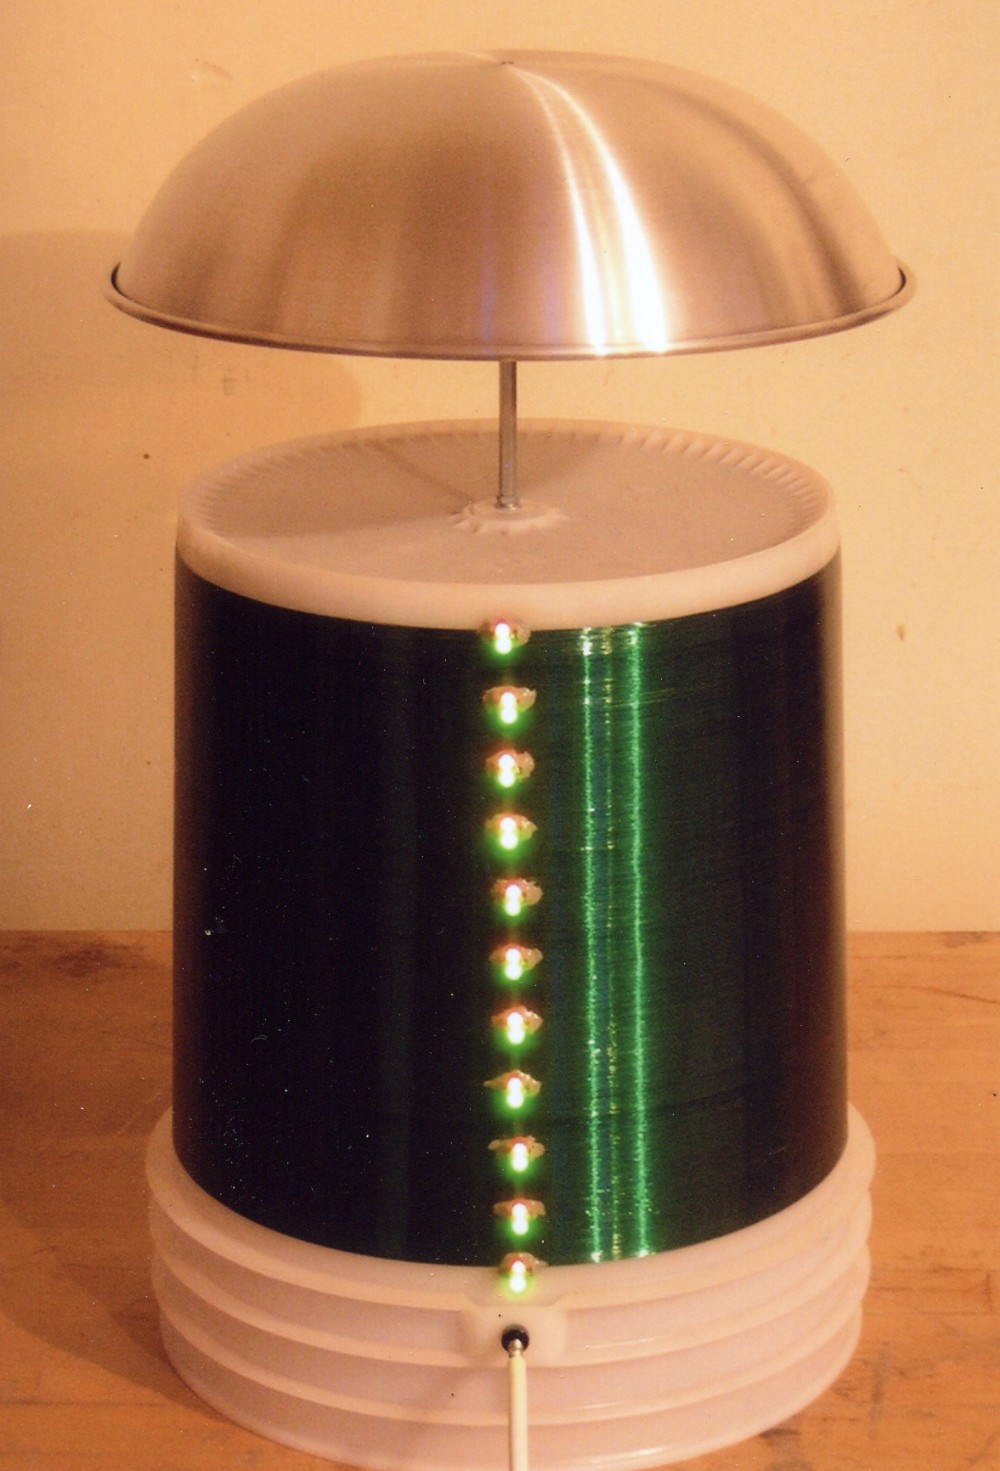 1992 Tesla coil resonator with LEDs to indicate current